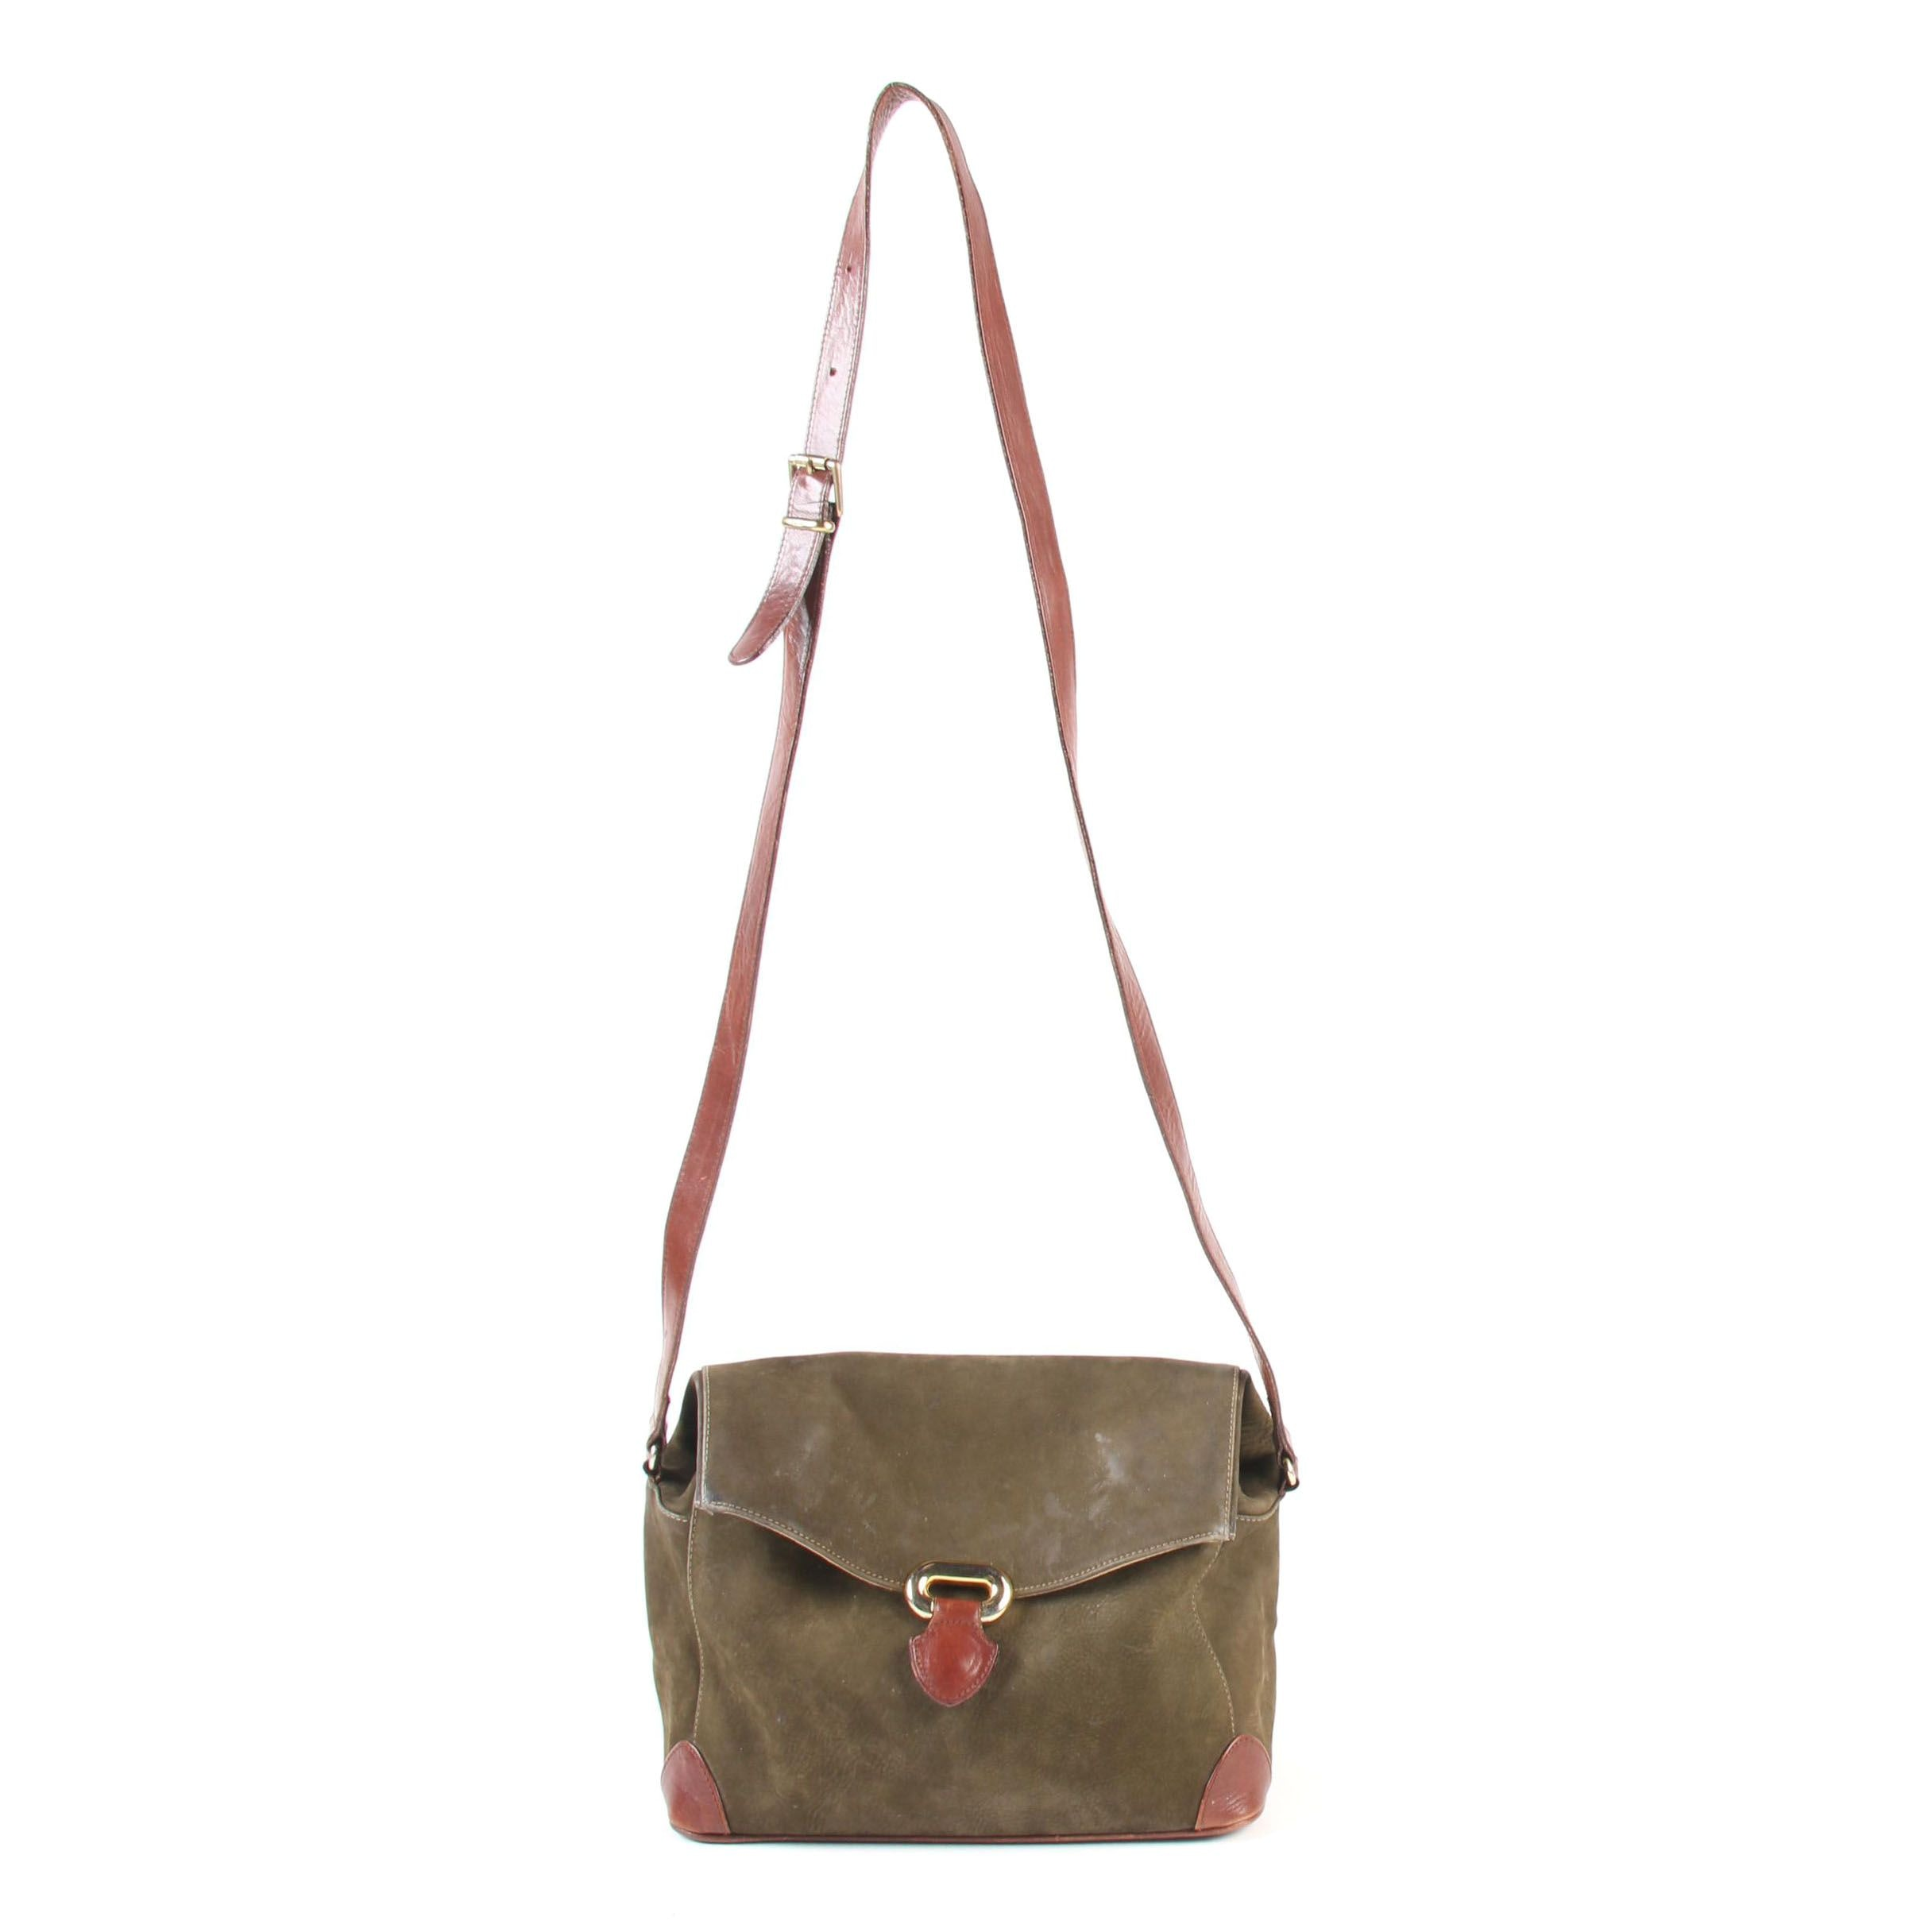 Furla Flap Front Croosbody Bag in Olive Green Suede and Mahogany Leather